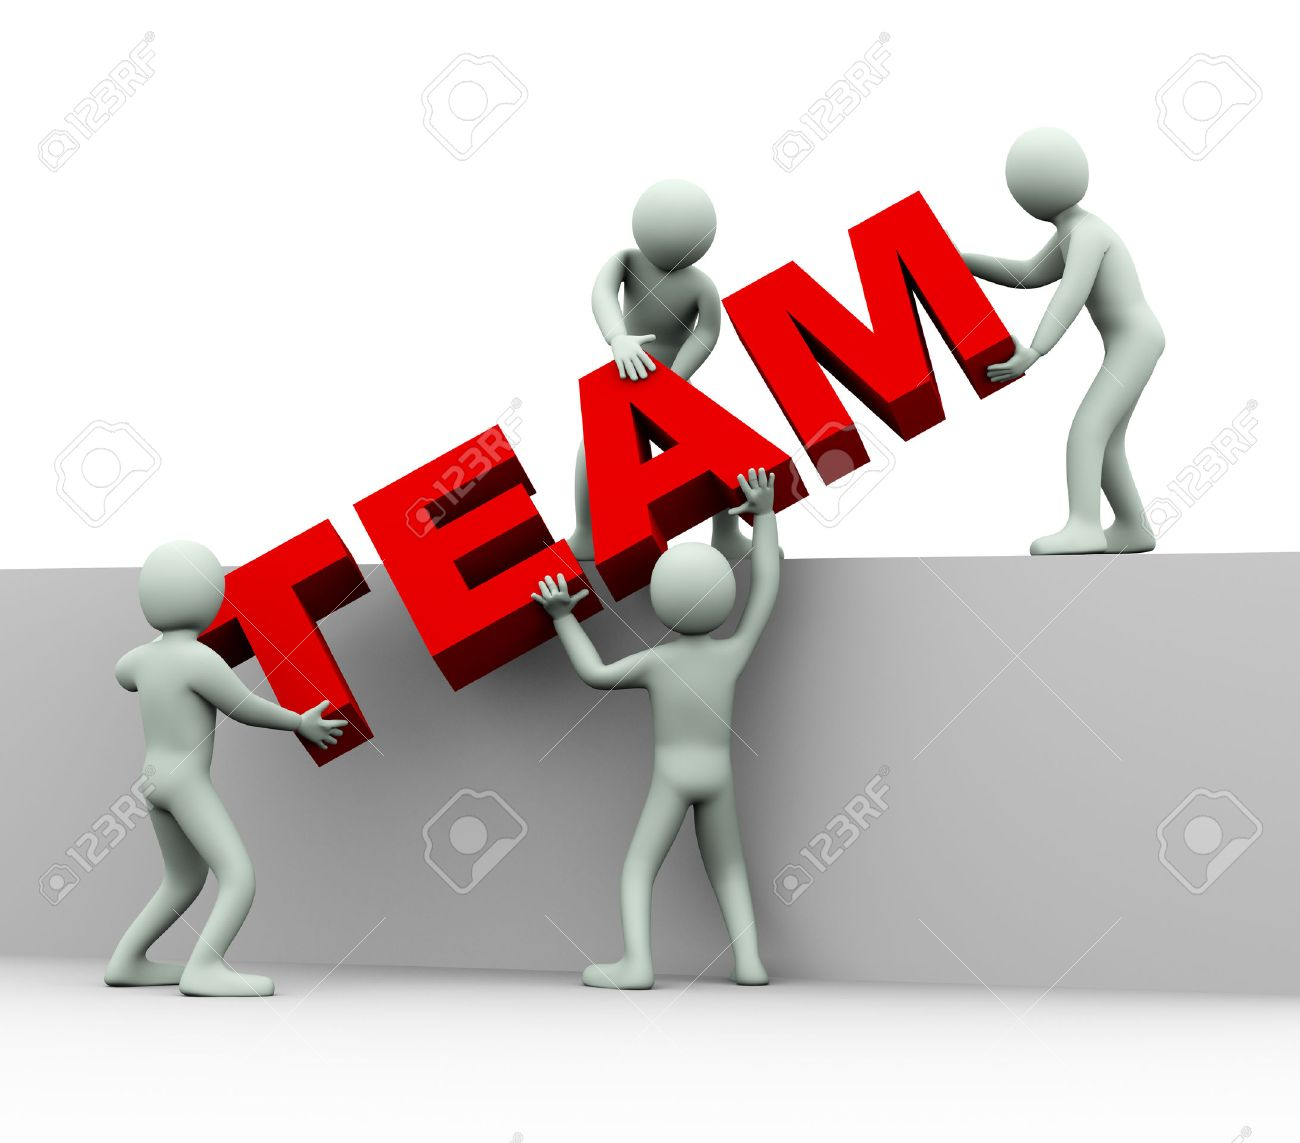 team working together images stock pictures royalty team team working together 3d illustration of men working together and placing word team 3d rendering